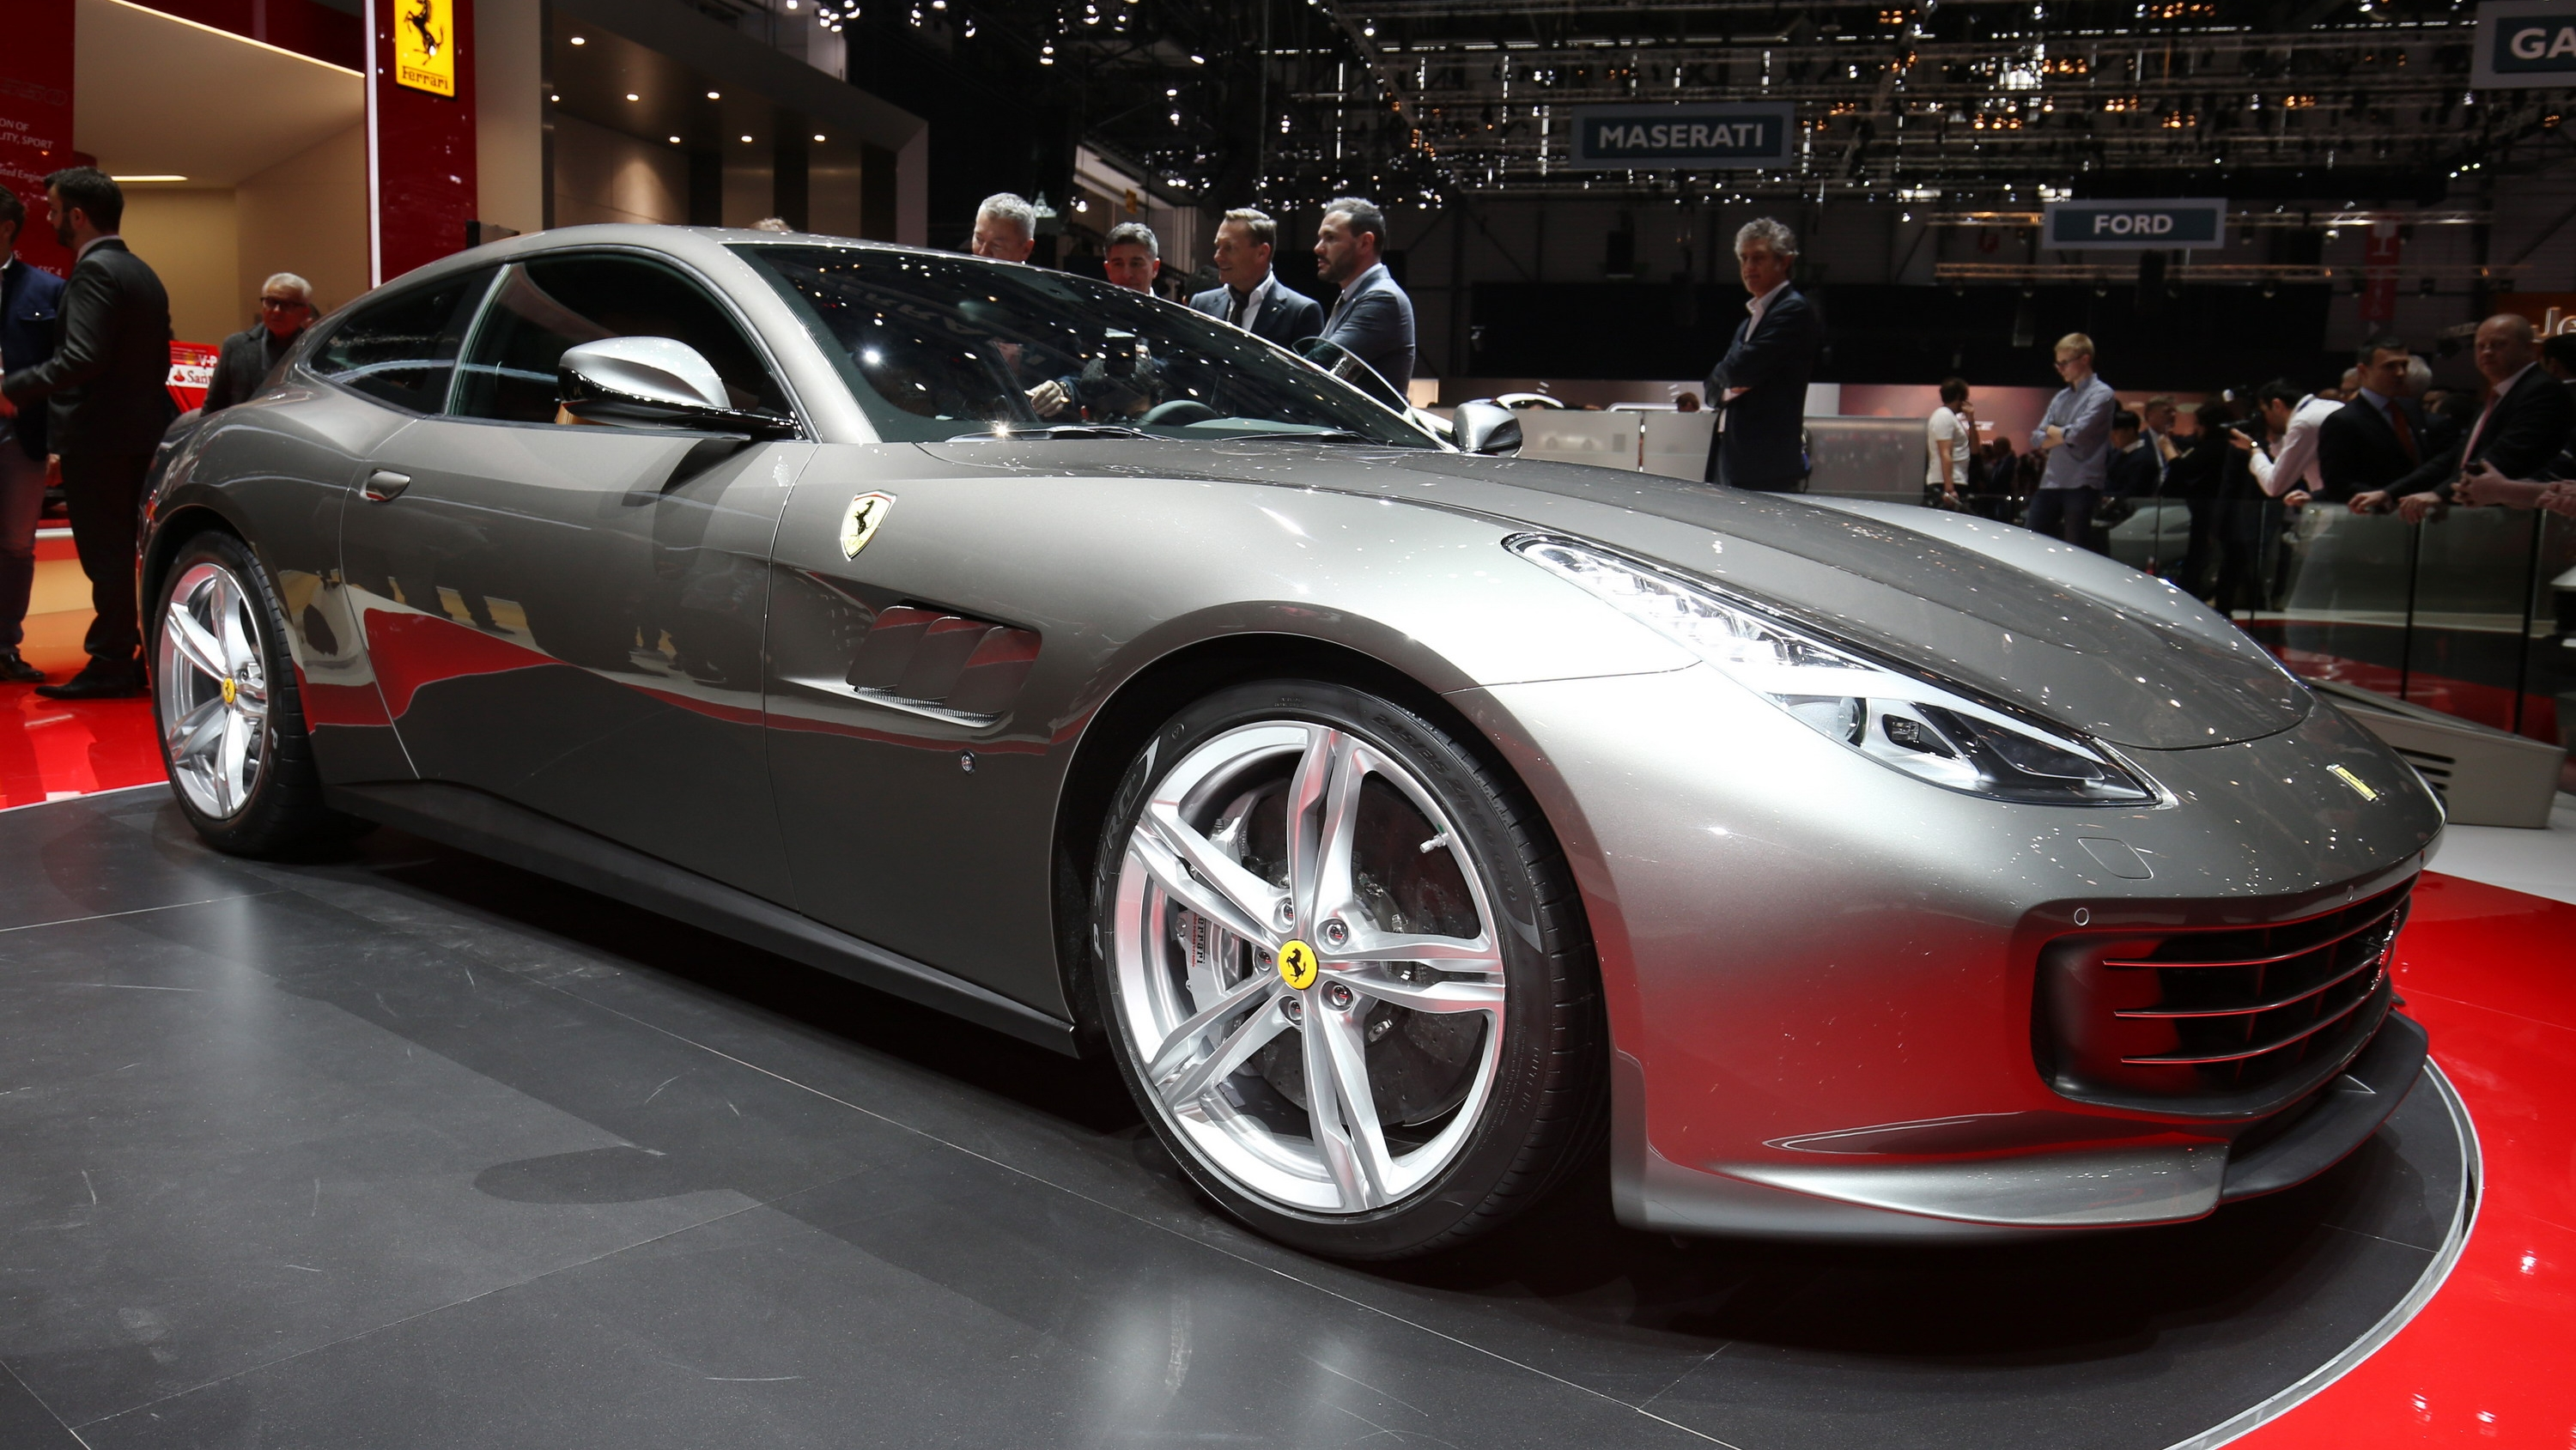 ferrari gtc4lusso reviews, specs, prices, photos and videos | top speed